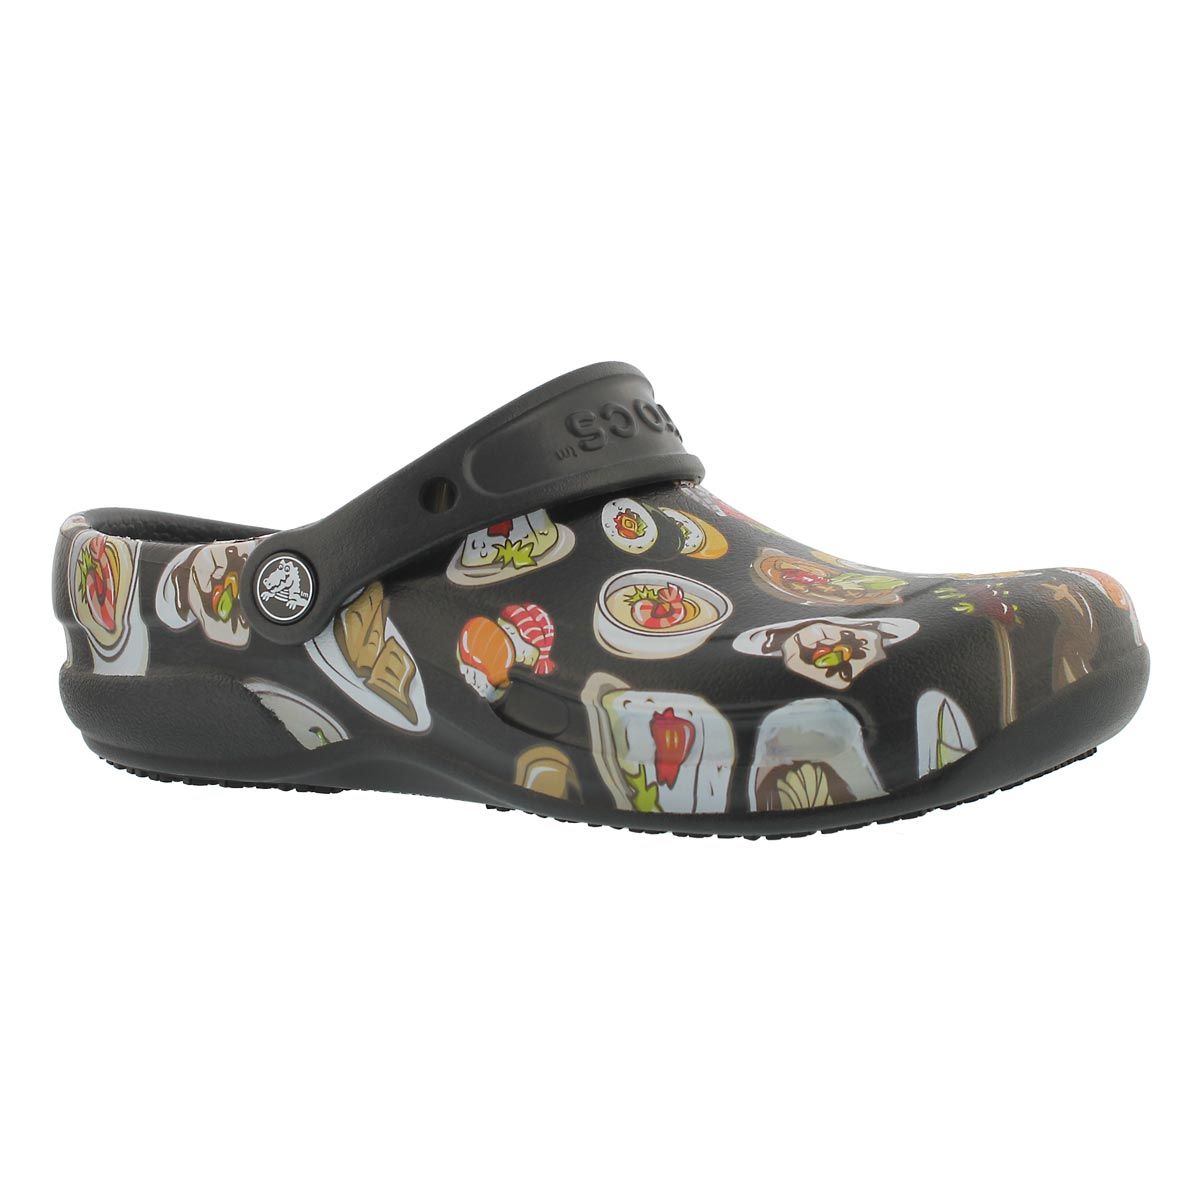 Unisex BISTRO GRAPHIC black/tumbleweed clogs